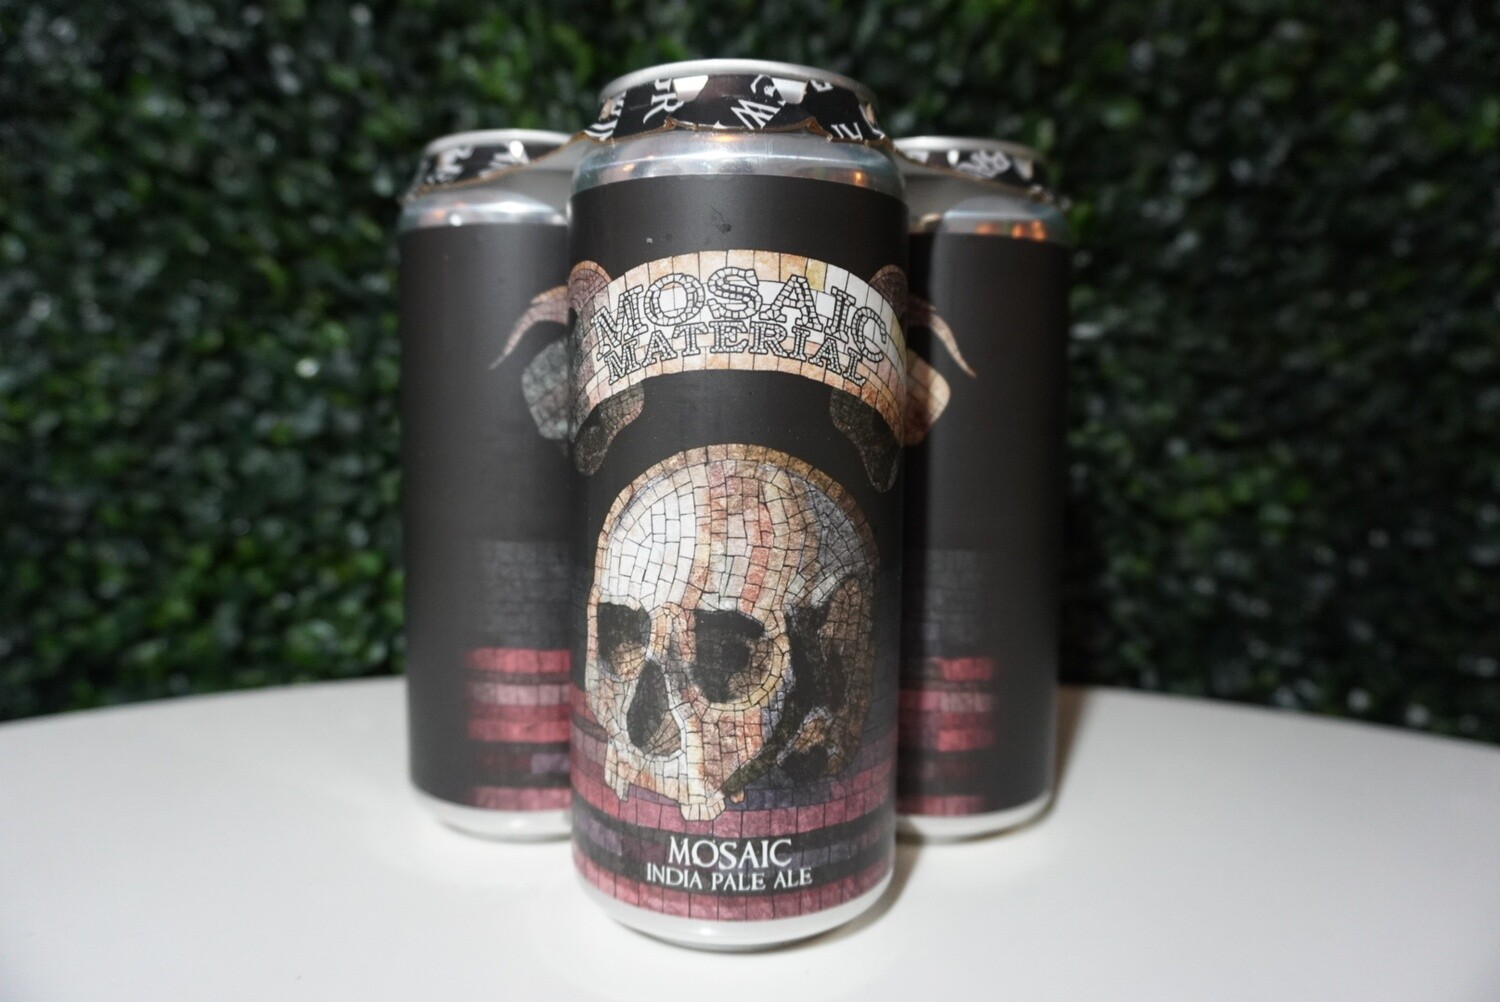 Angry Chair - Mosaic Material -6.7% ABV - 4 Pack